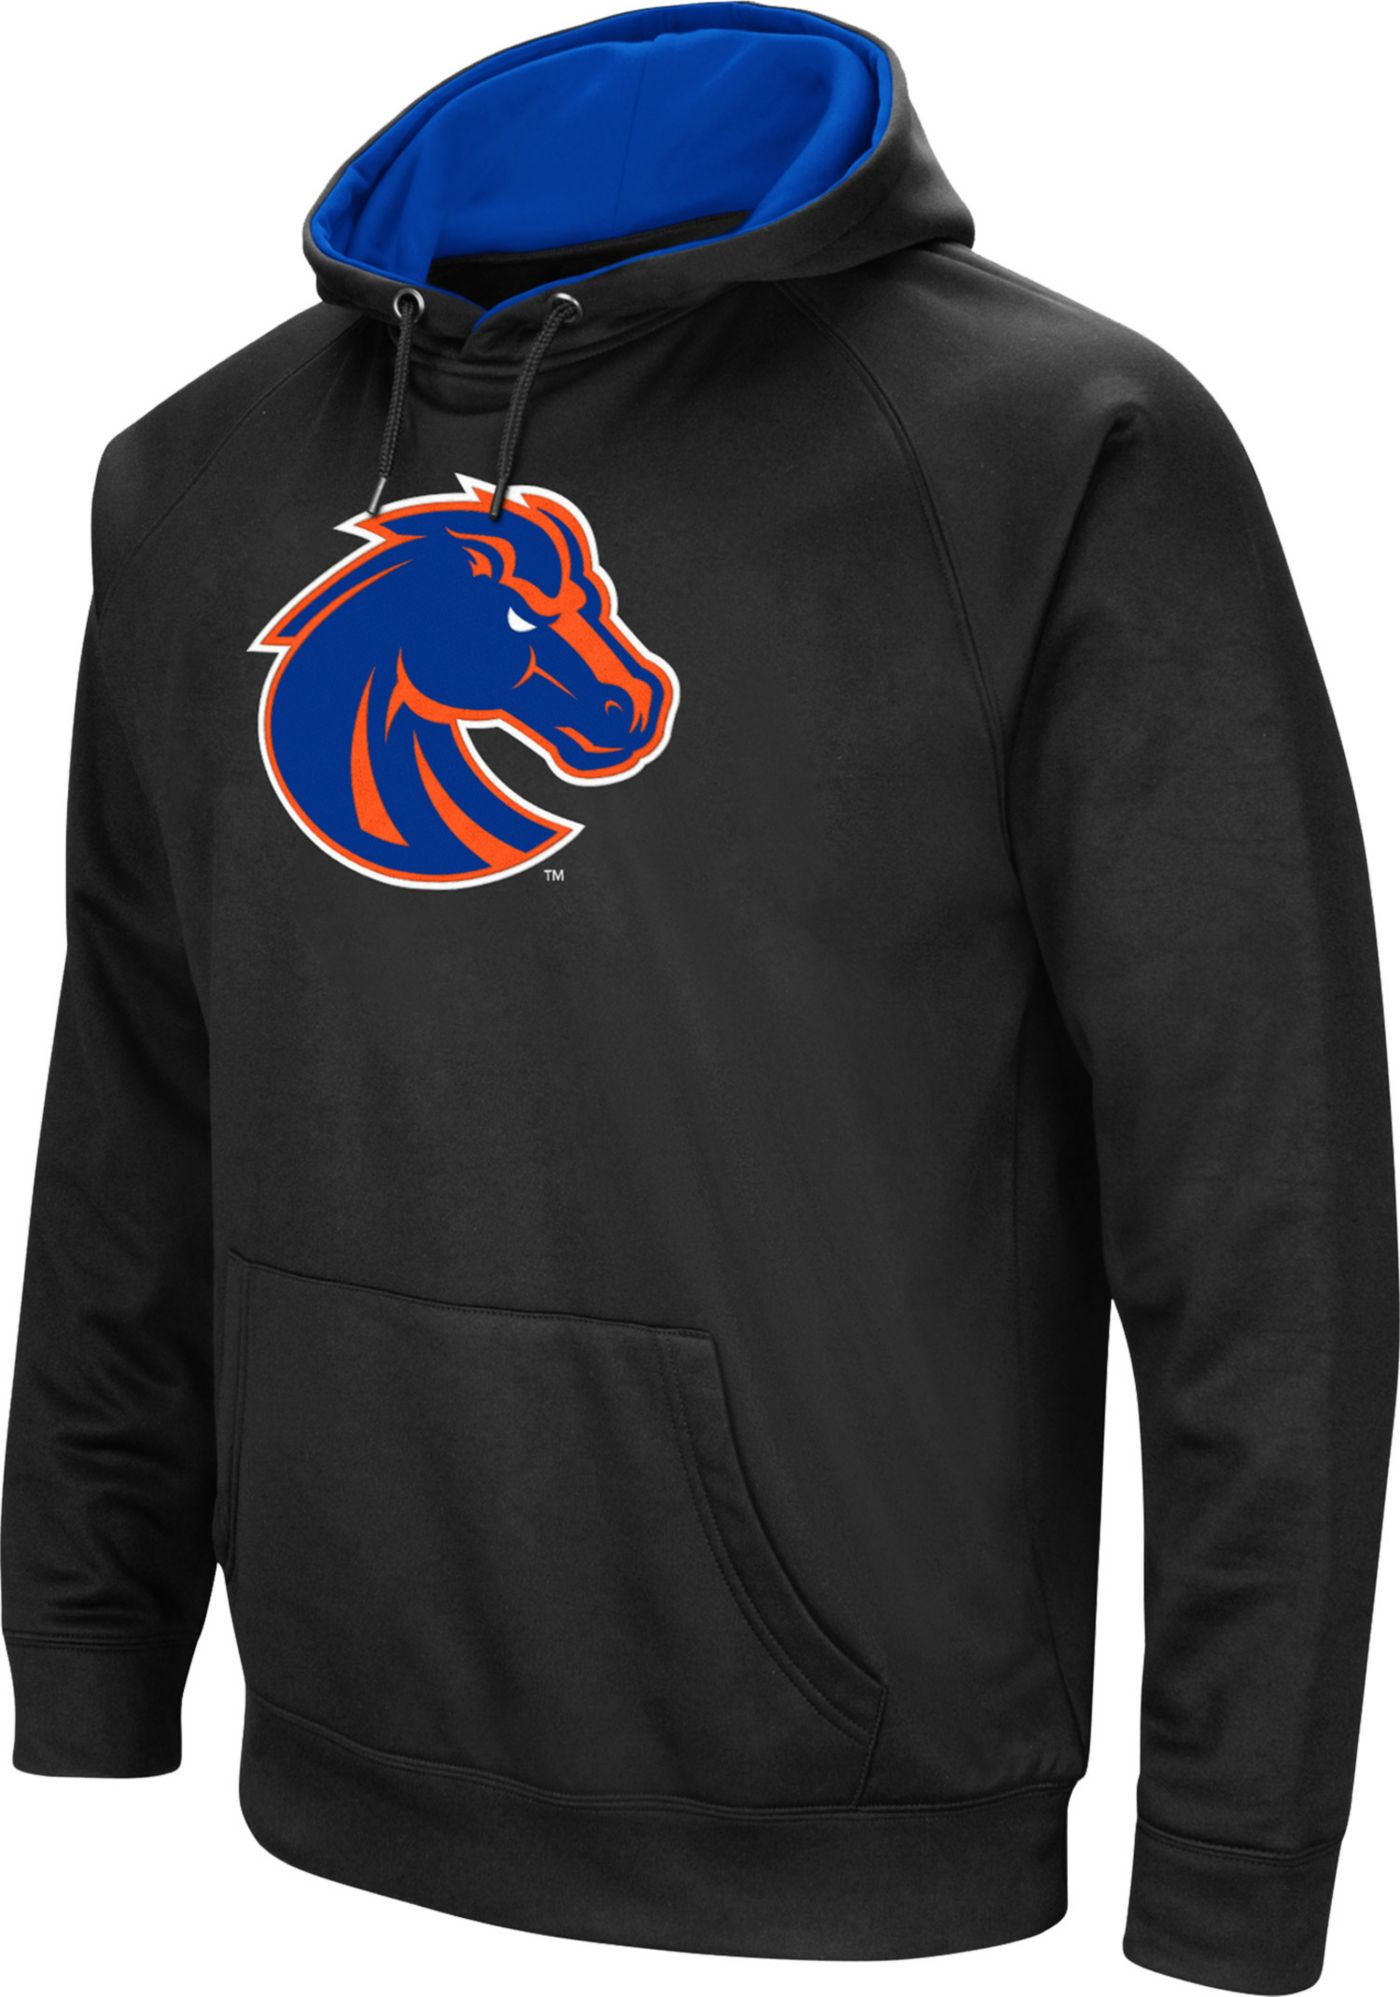 Colosseum Men's Boise State Broncos Black Performance Hoodie